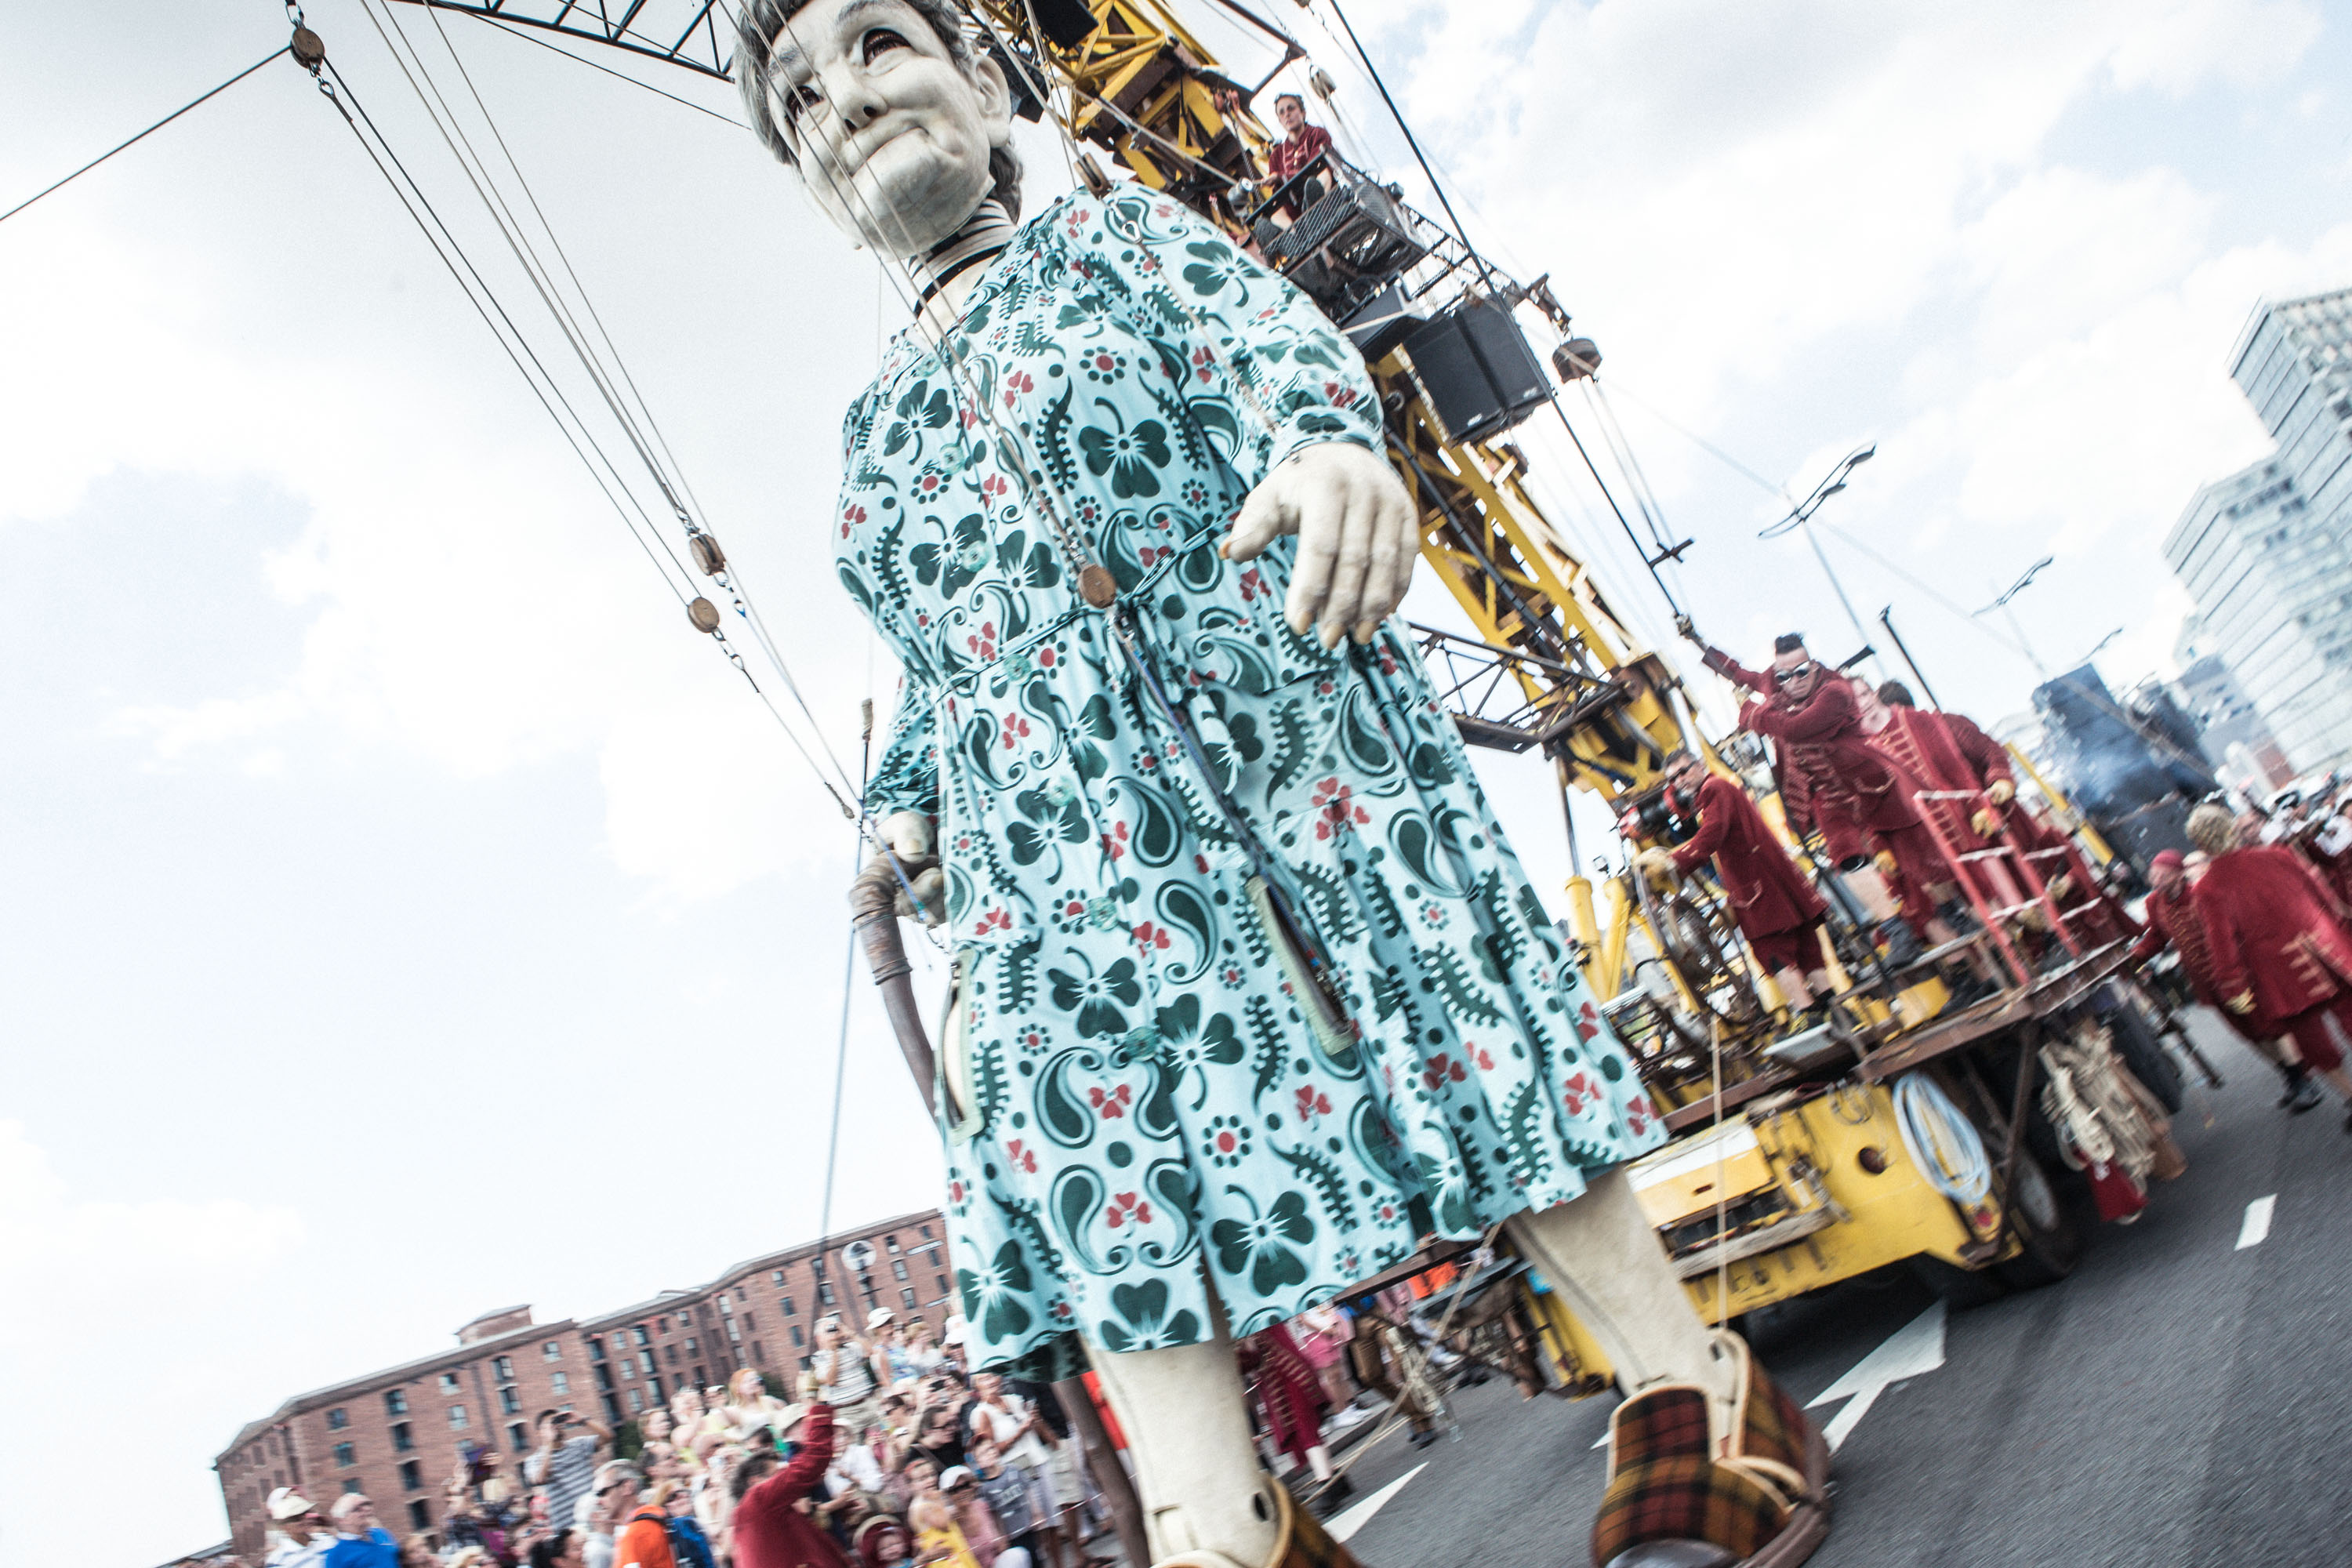 Royal de Luxe Giant to boost local economy